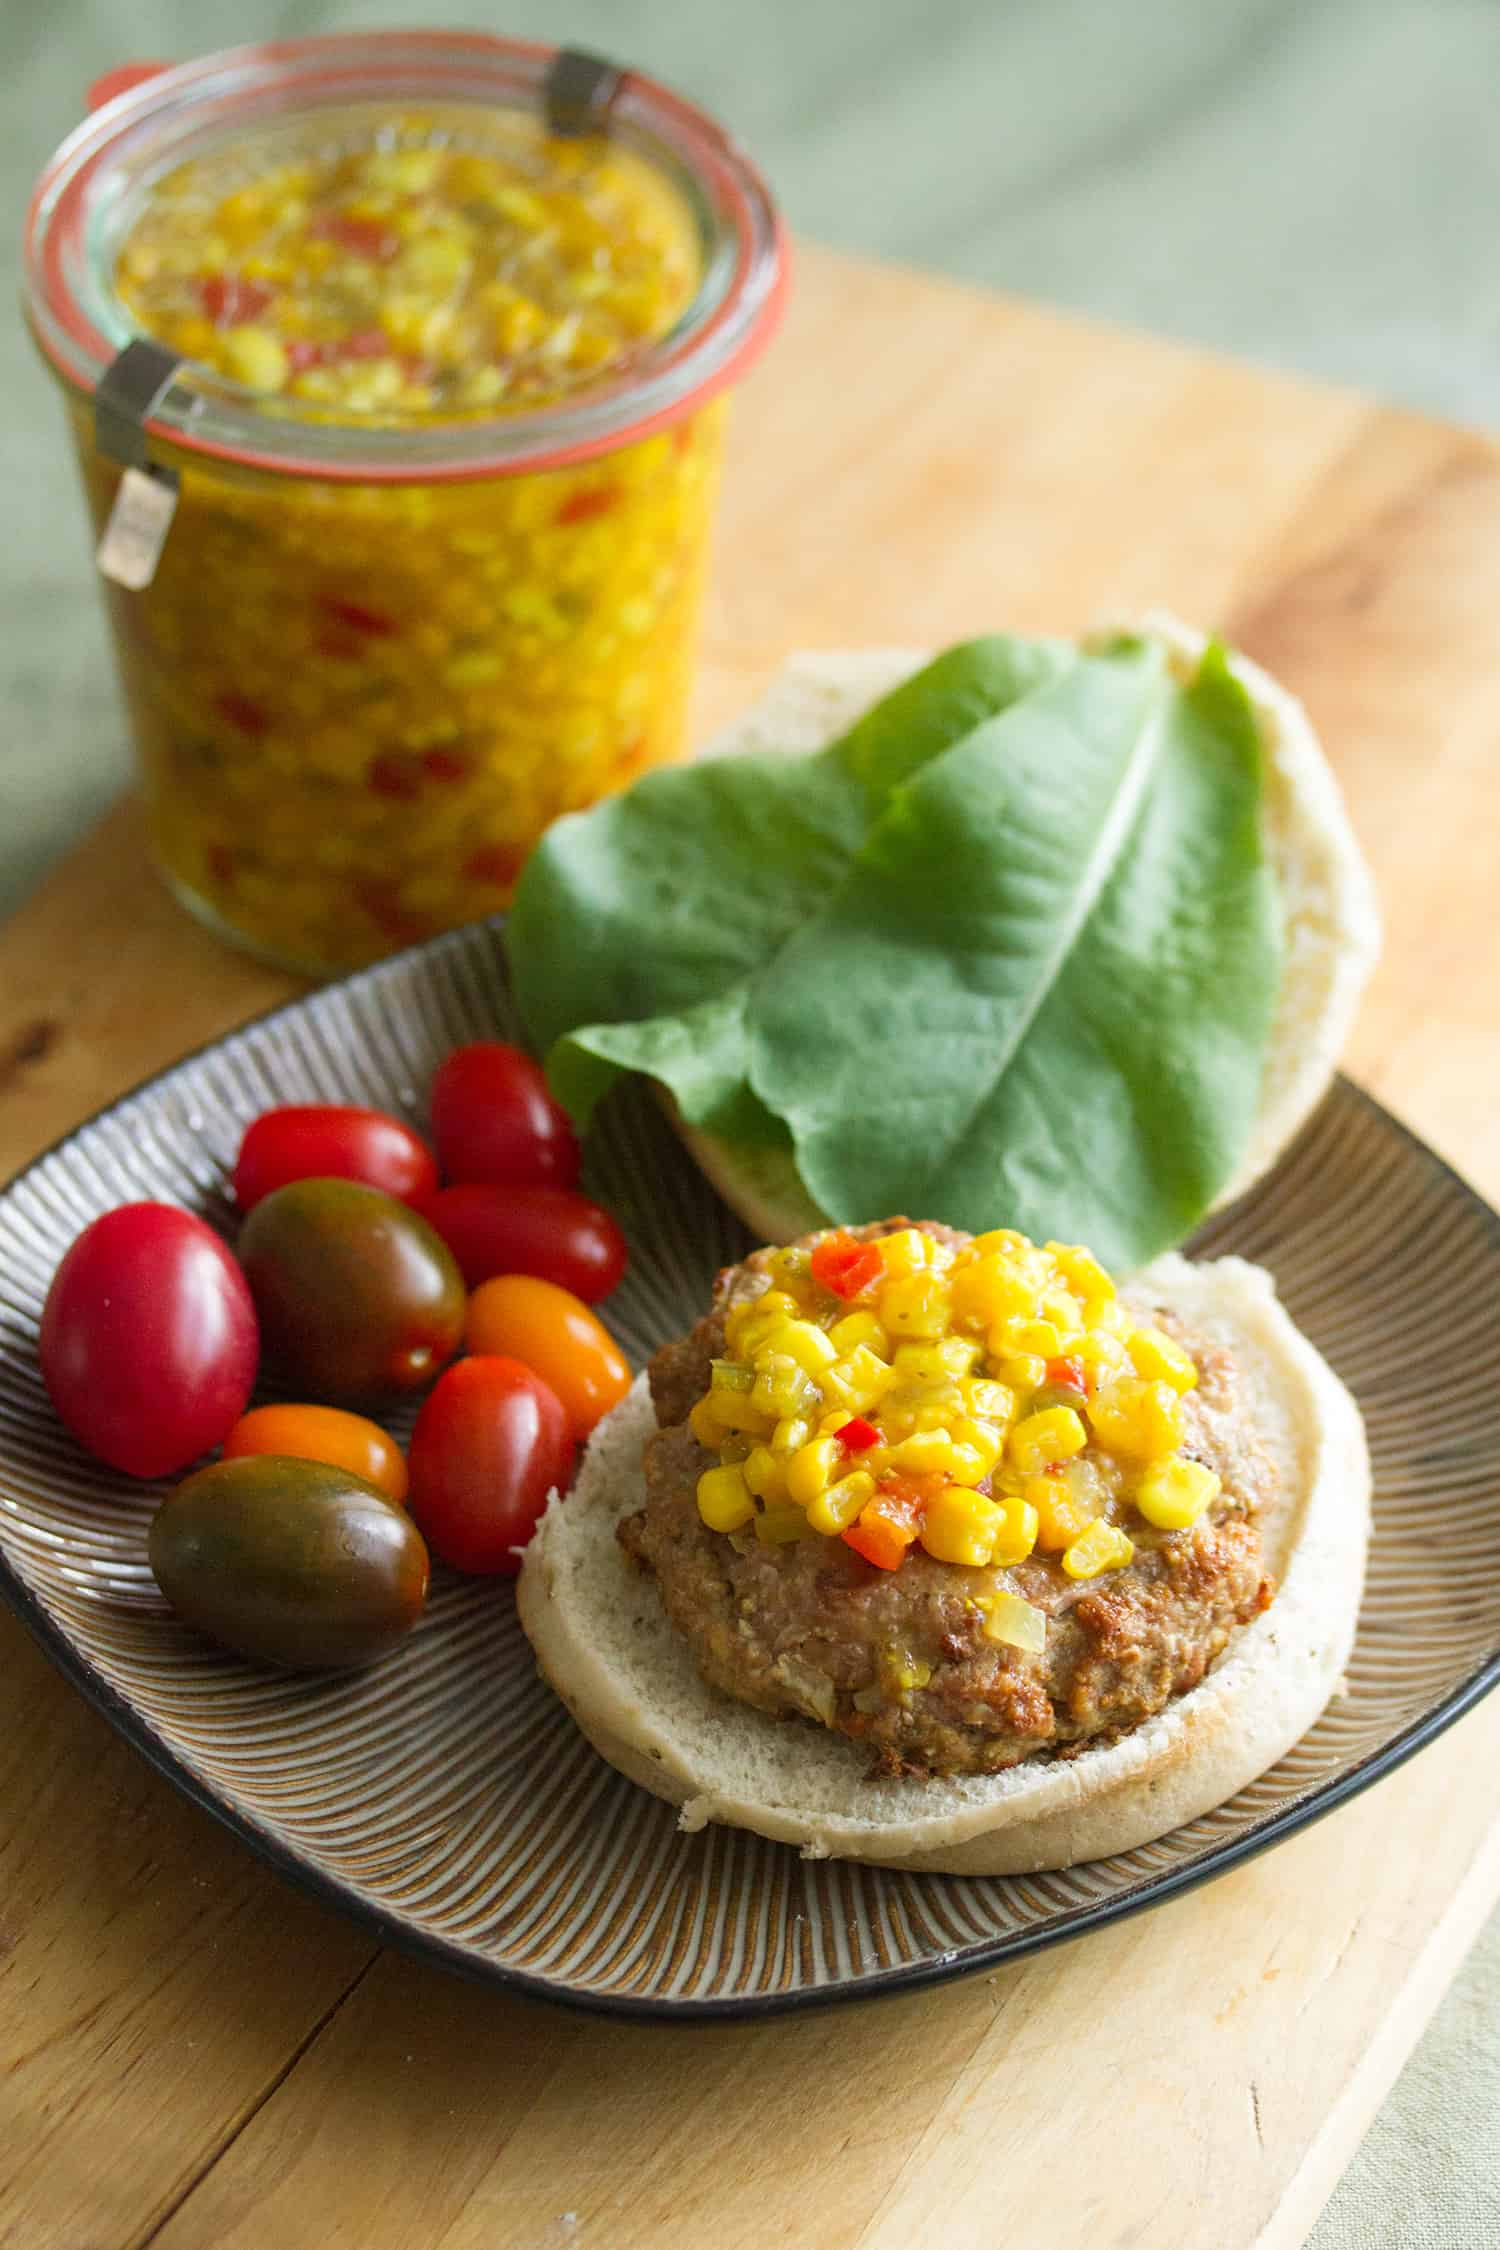 Relish the Summer: Sweet and Spicy Corn Relish